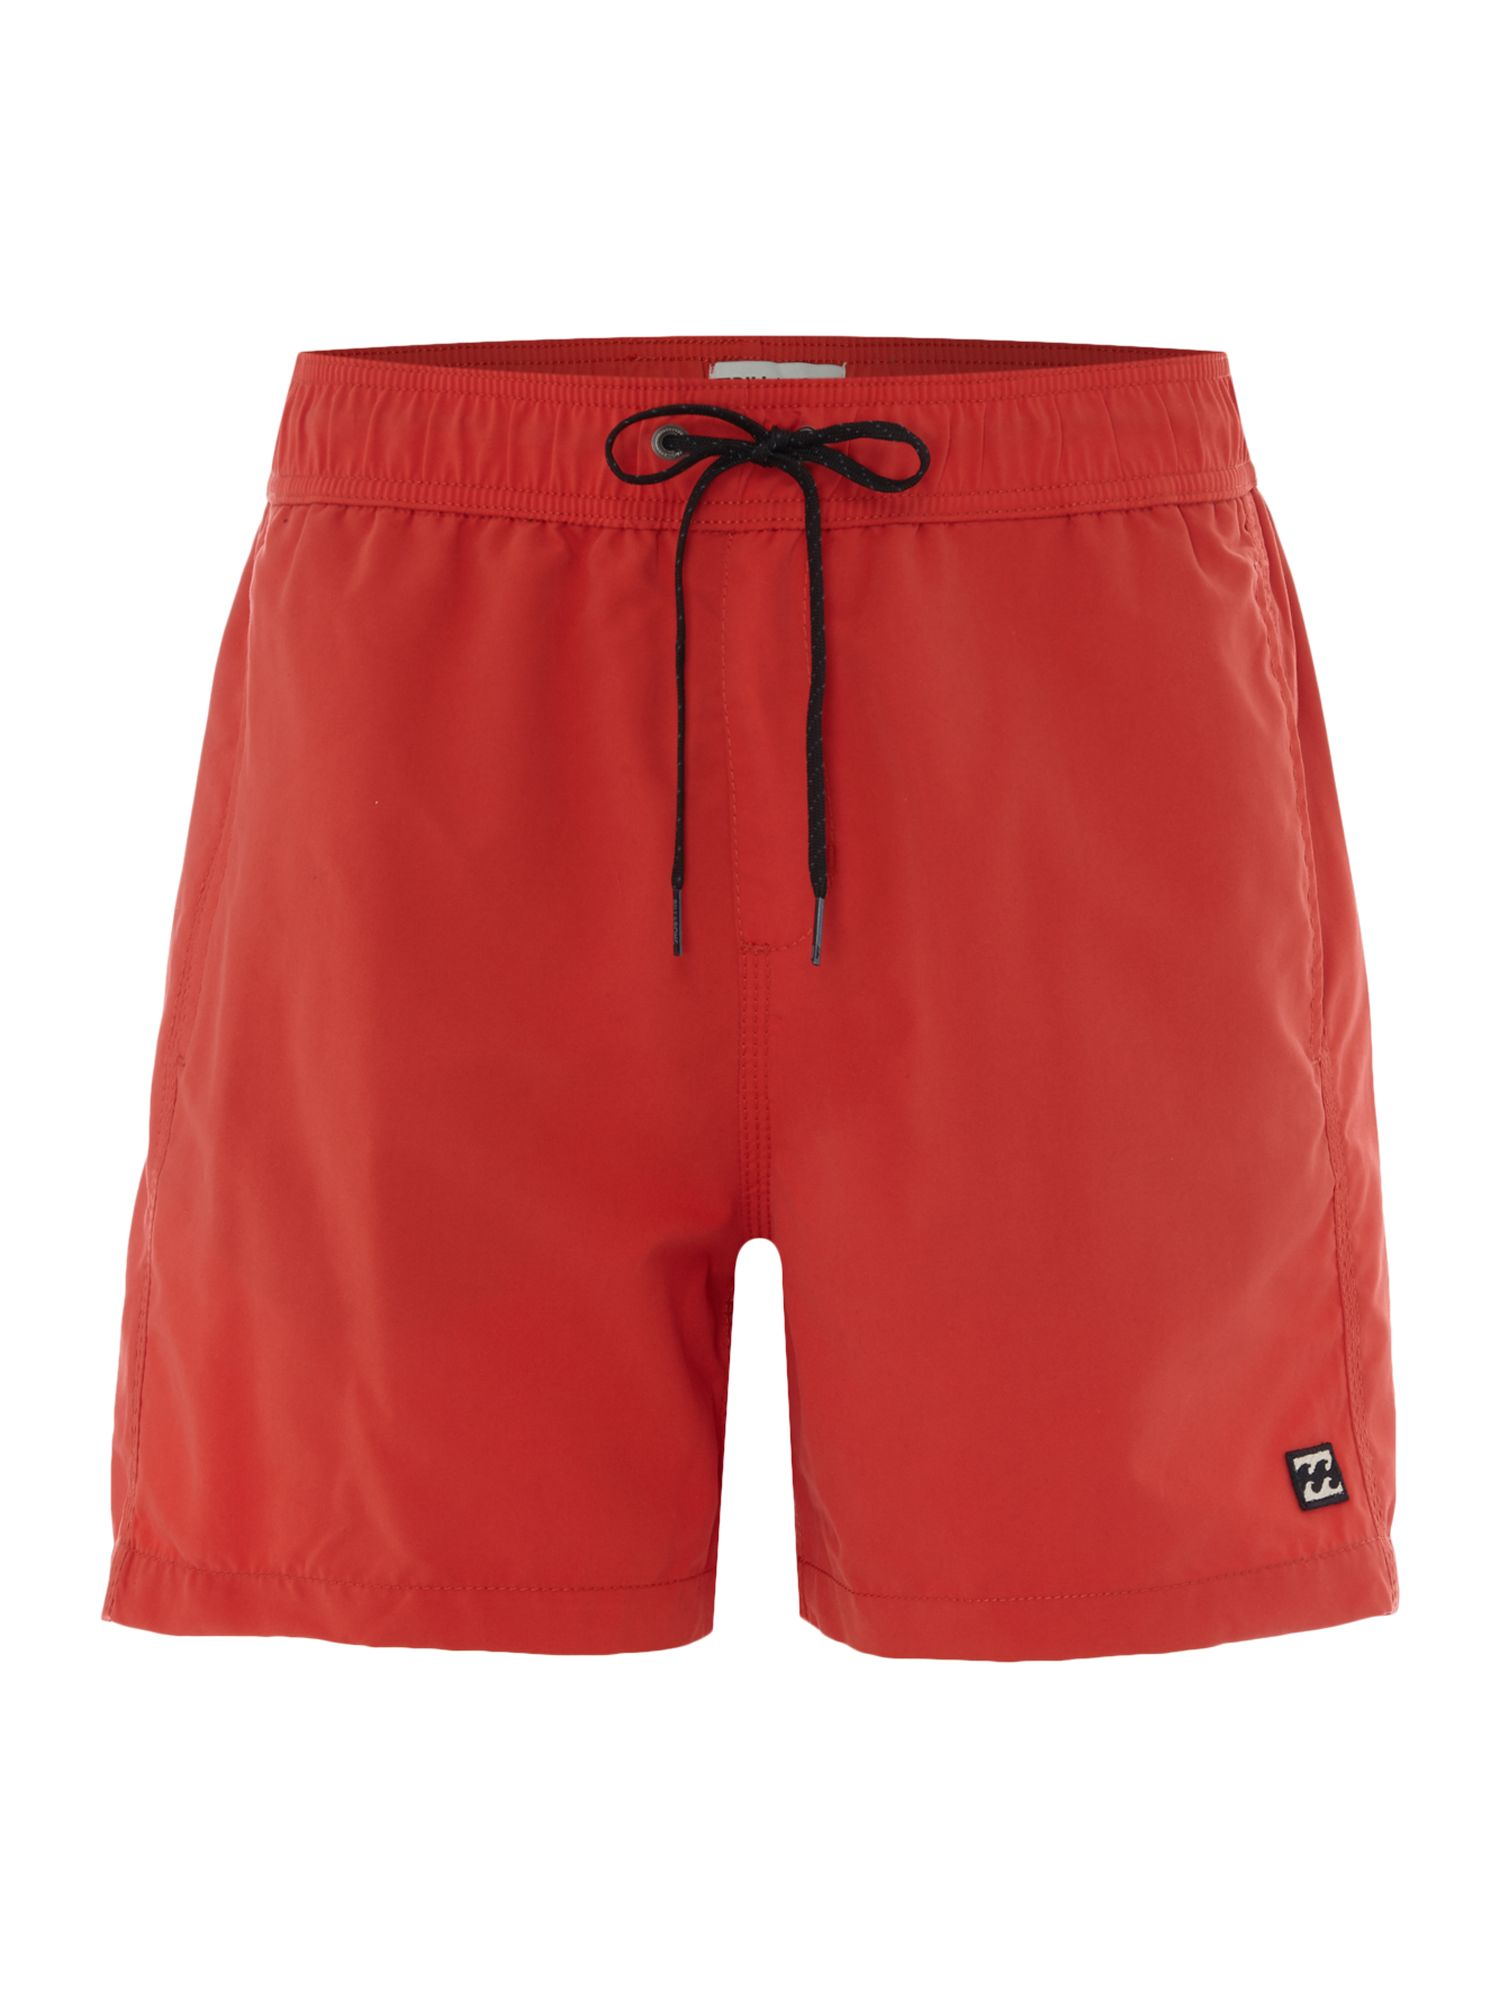 Men's Billabong Core Fit Surf Short, Red